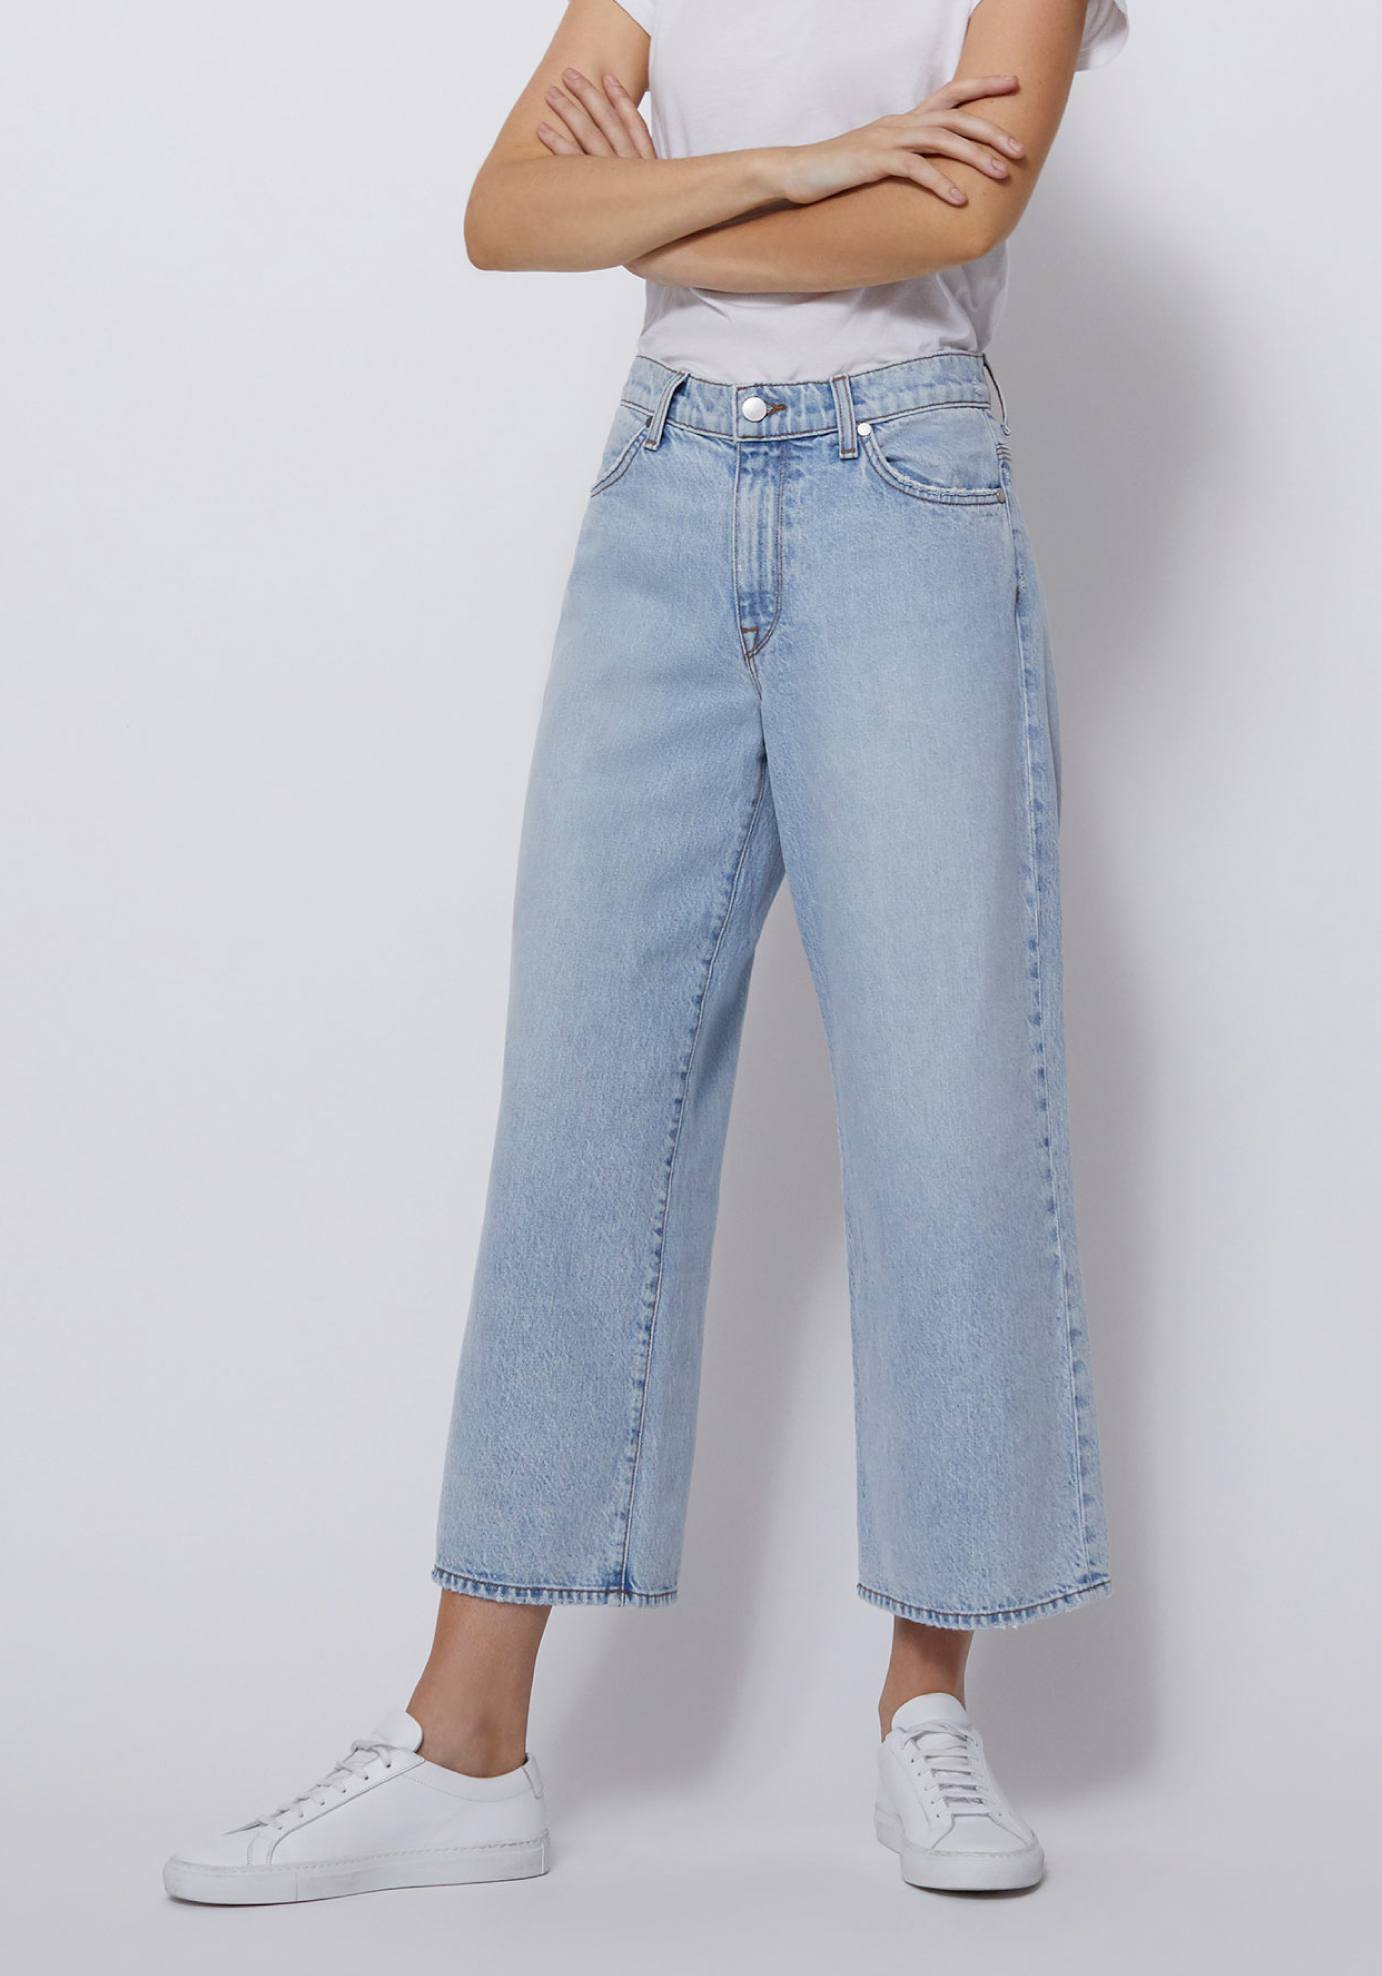 Shop Women's Cropped Wide Leg Jeans